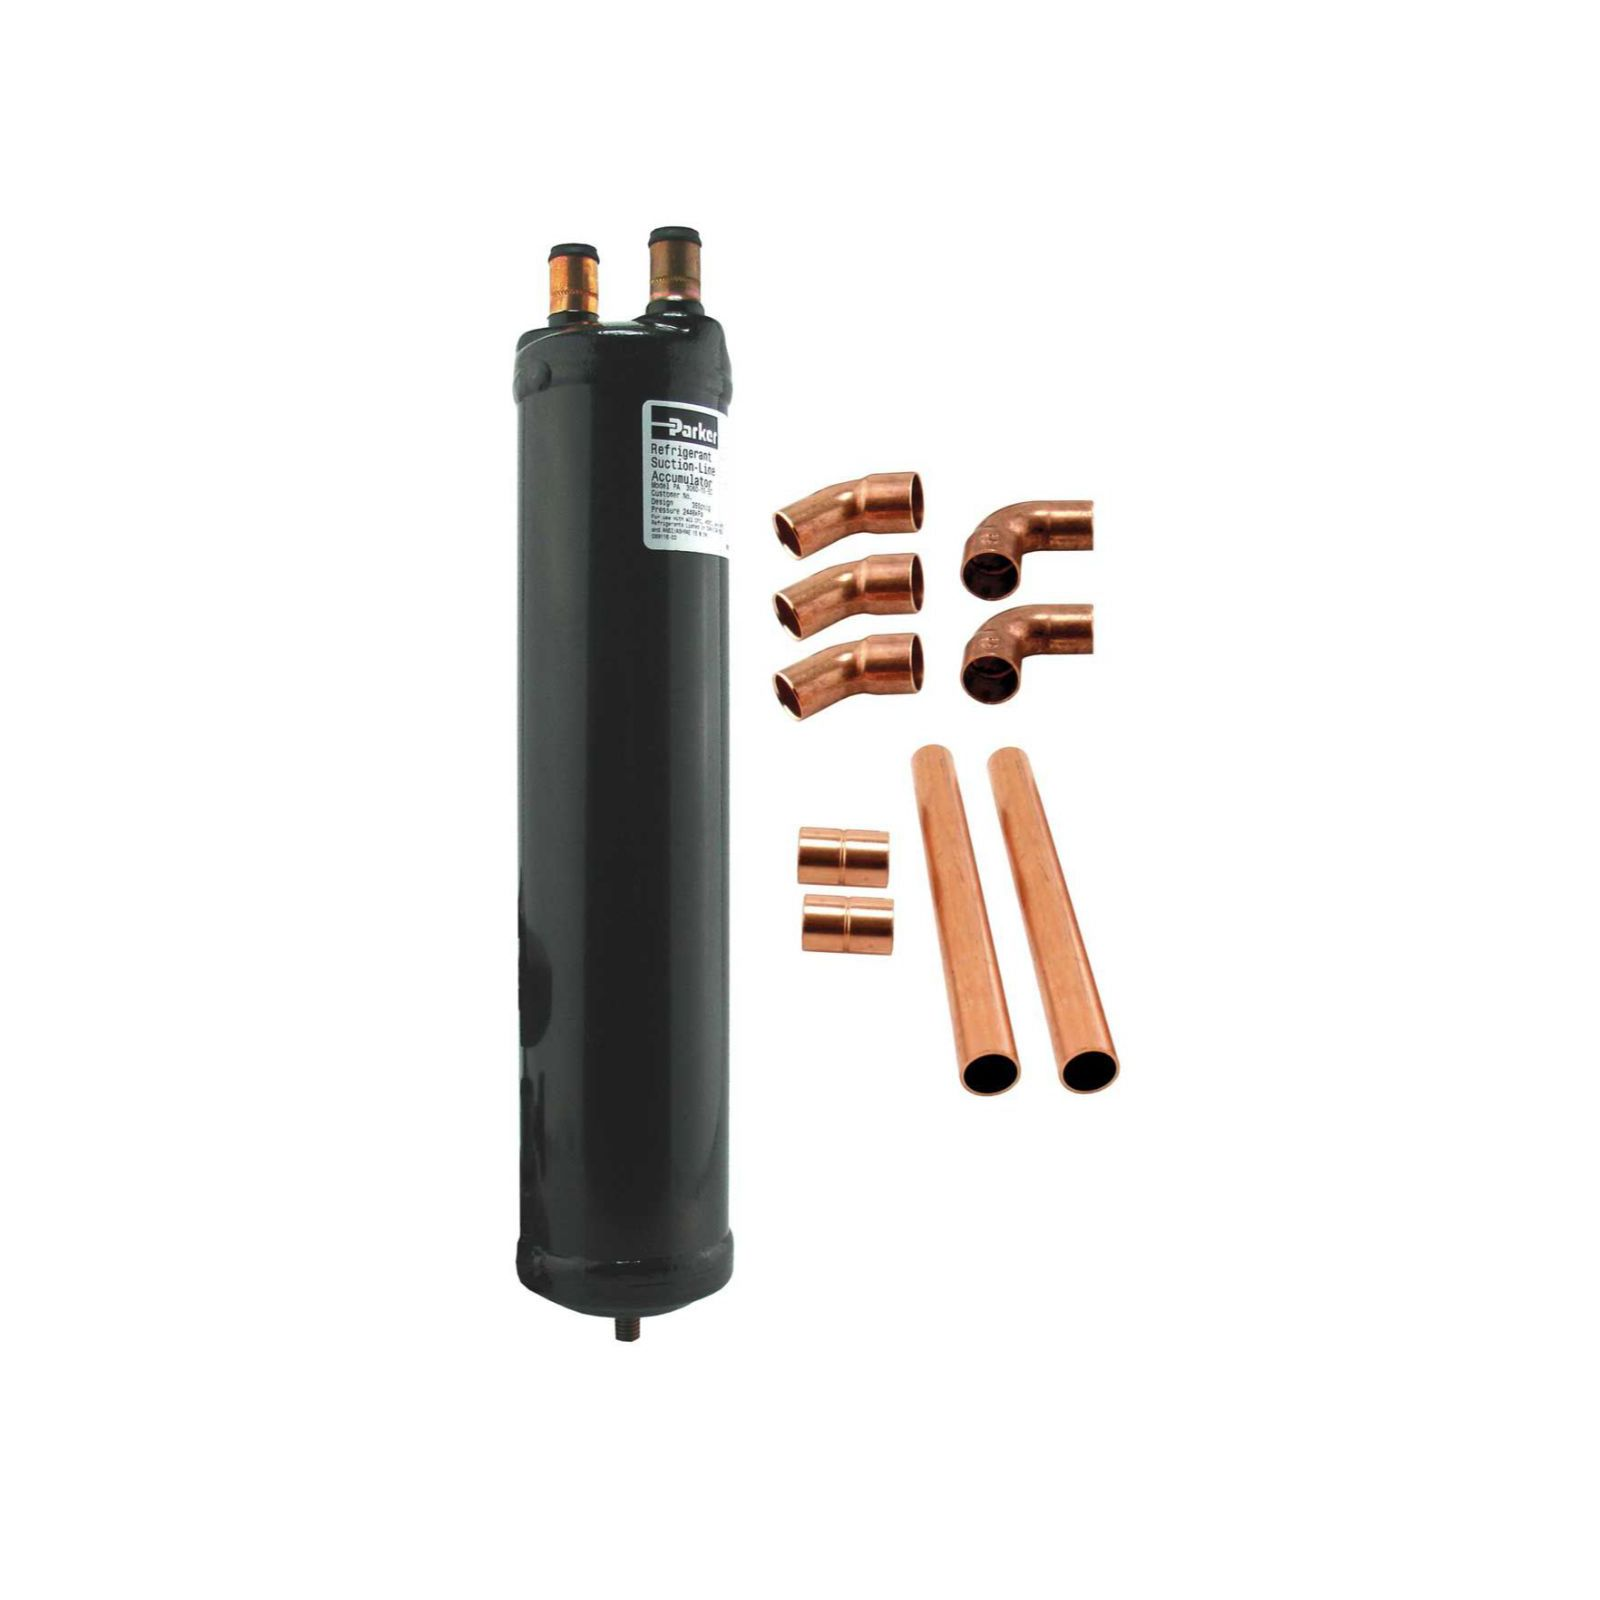 PROTECH 83-22537-73 - Accumulator Kit